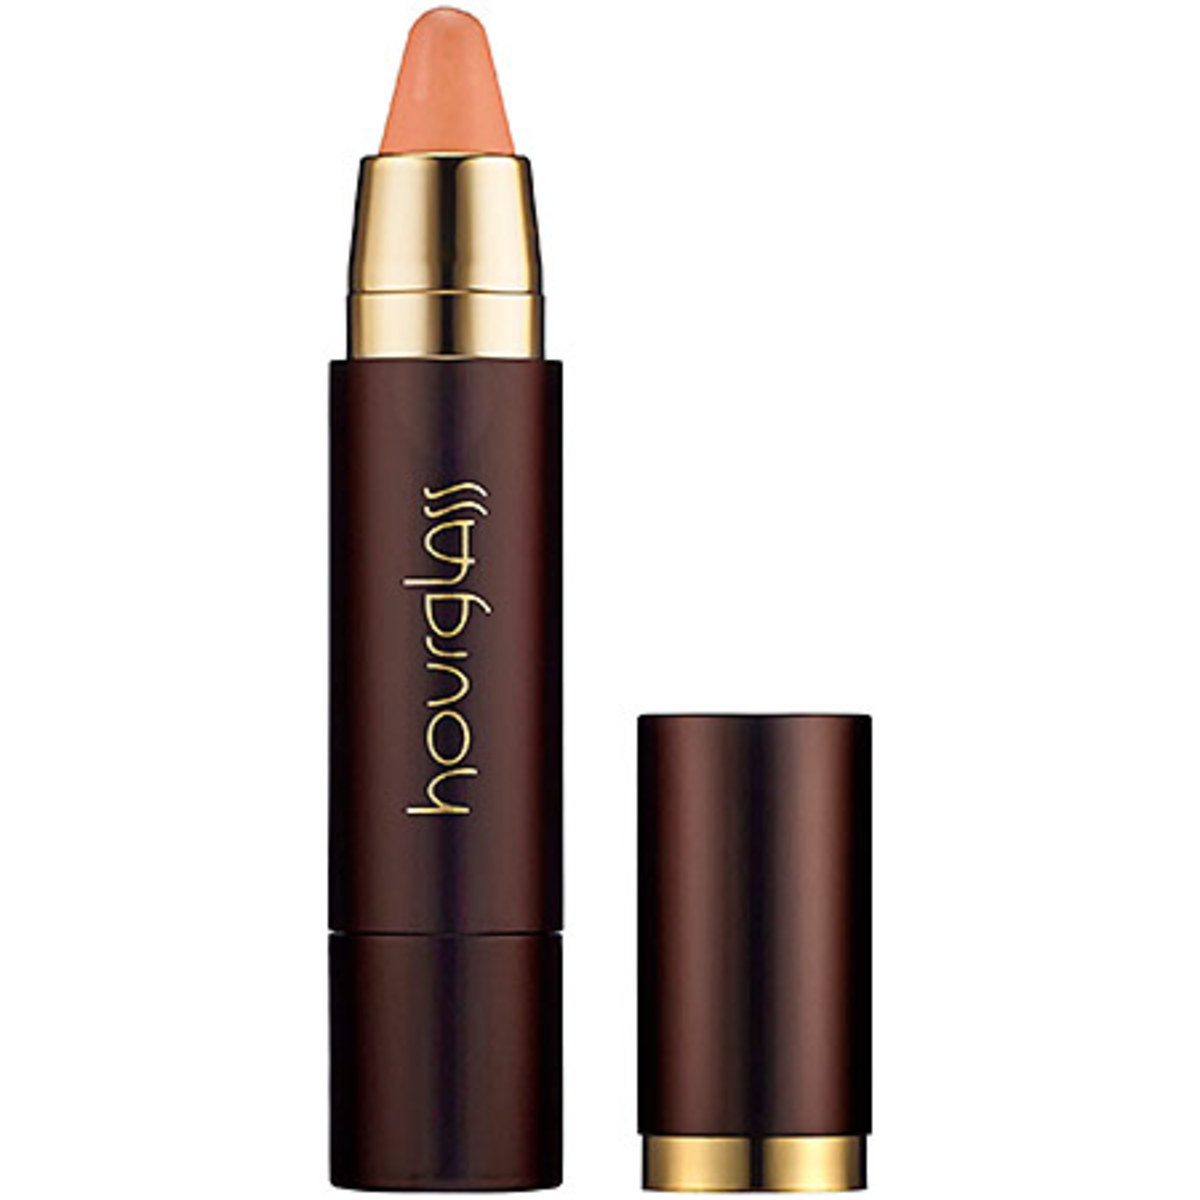 Hourglass Femme Nude Lip Stylo in Nude No. 1